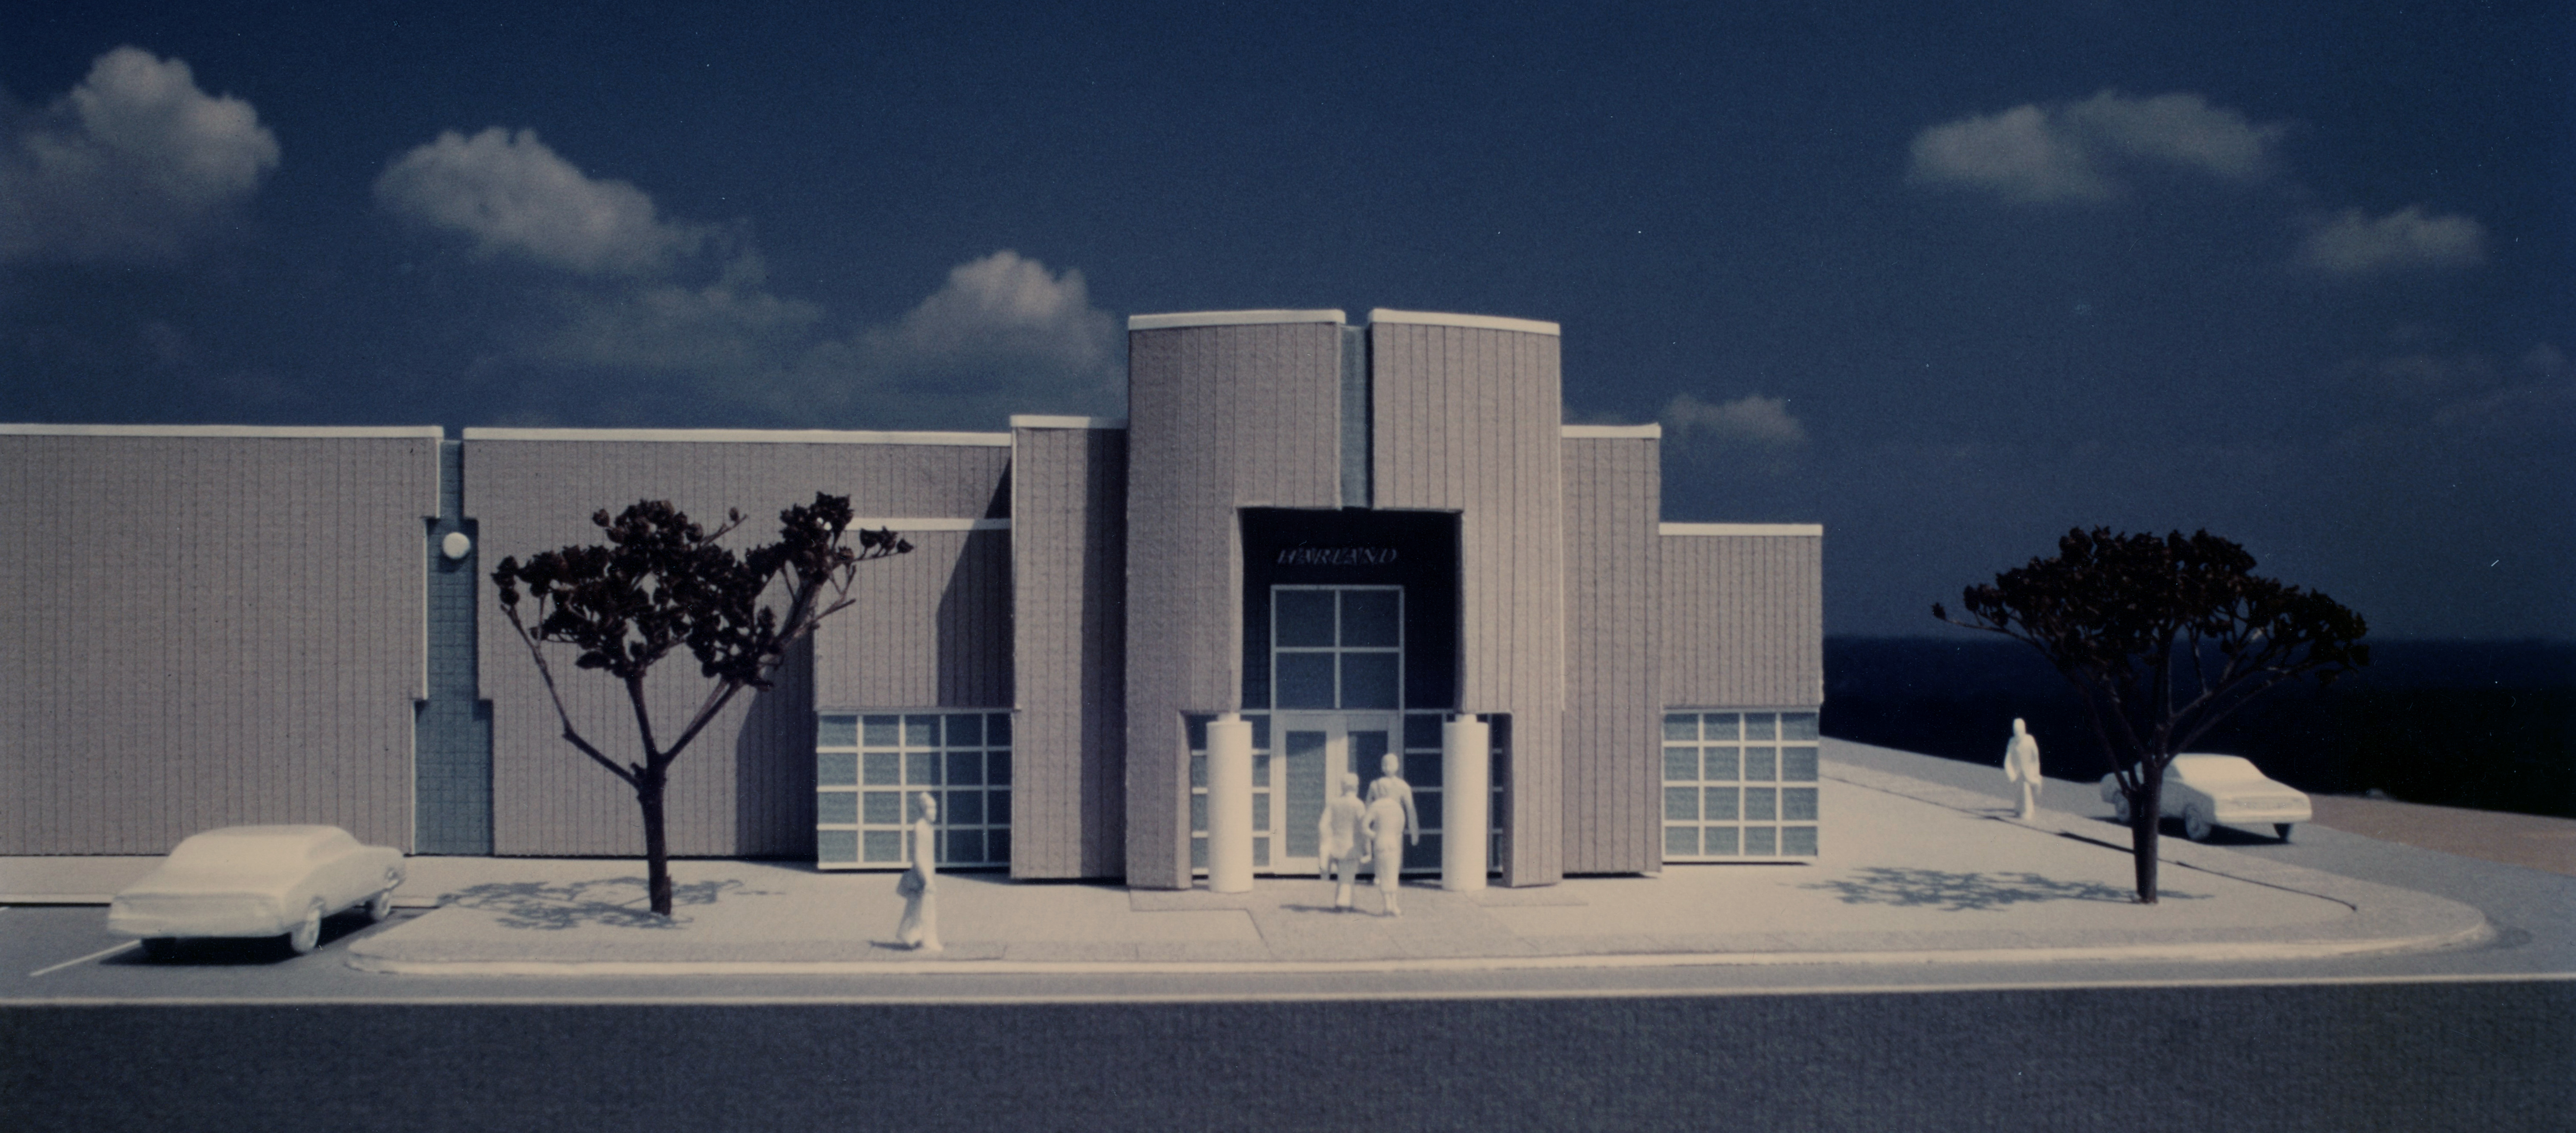 Harland Miami concept model view 4